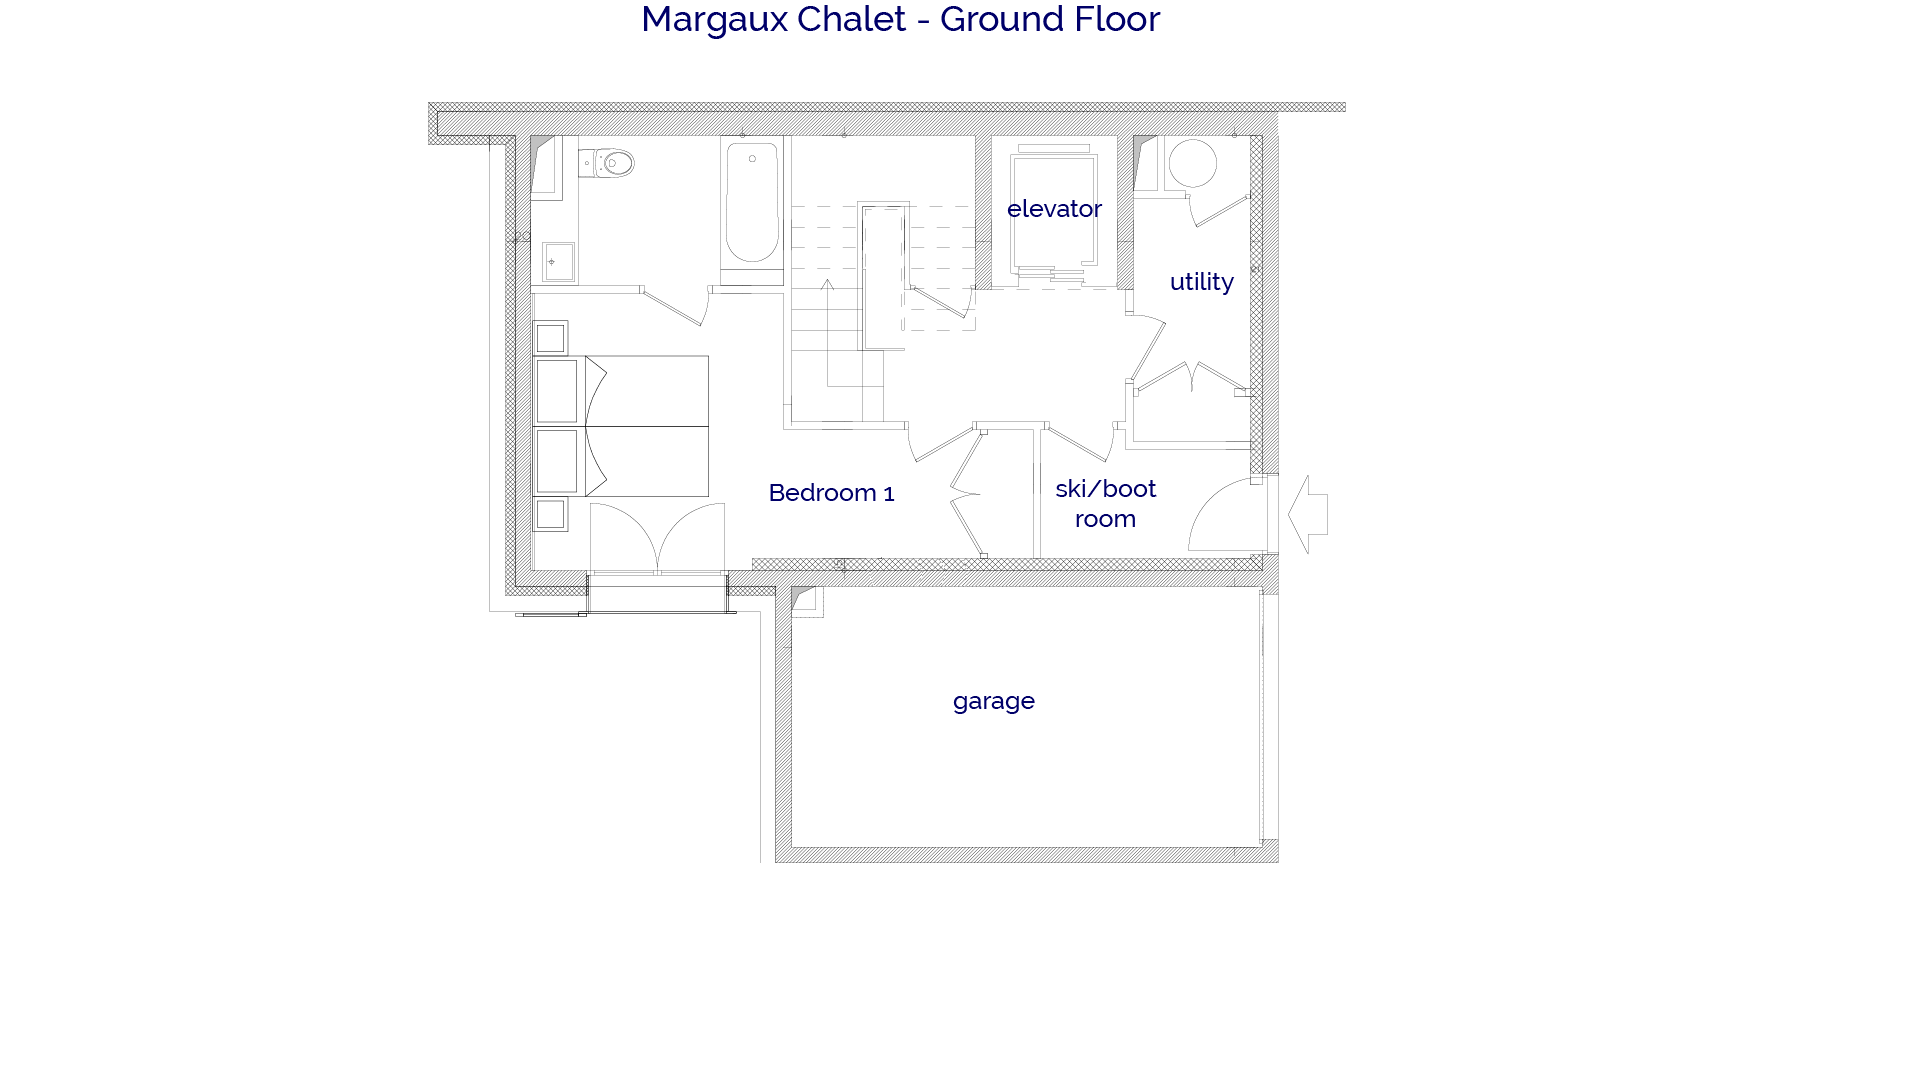 Margaux luxury self catered chalet in Sainte Foy, Ground floor plans